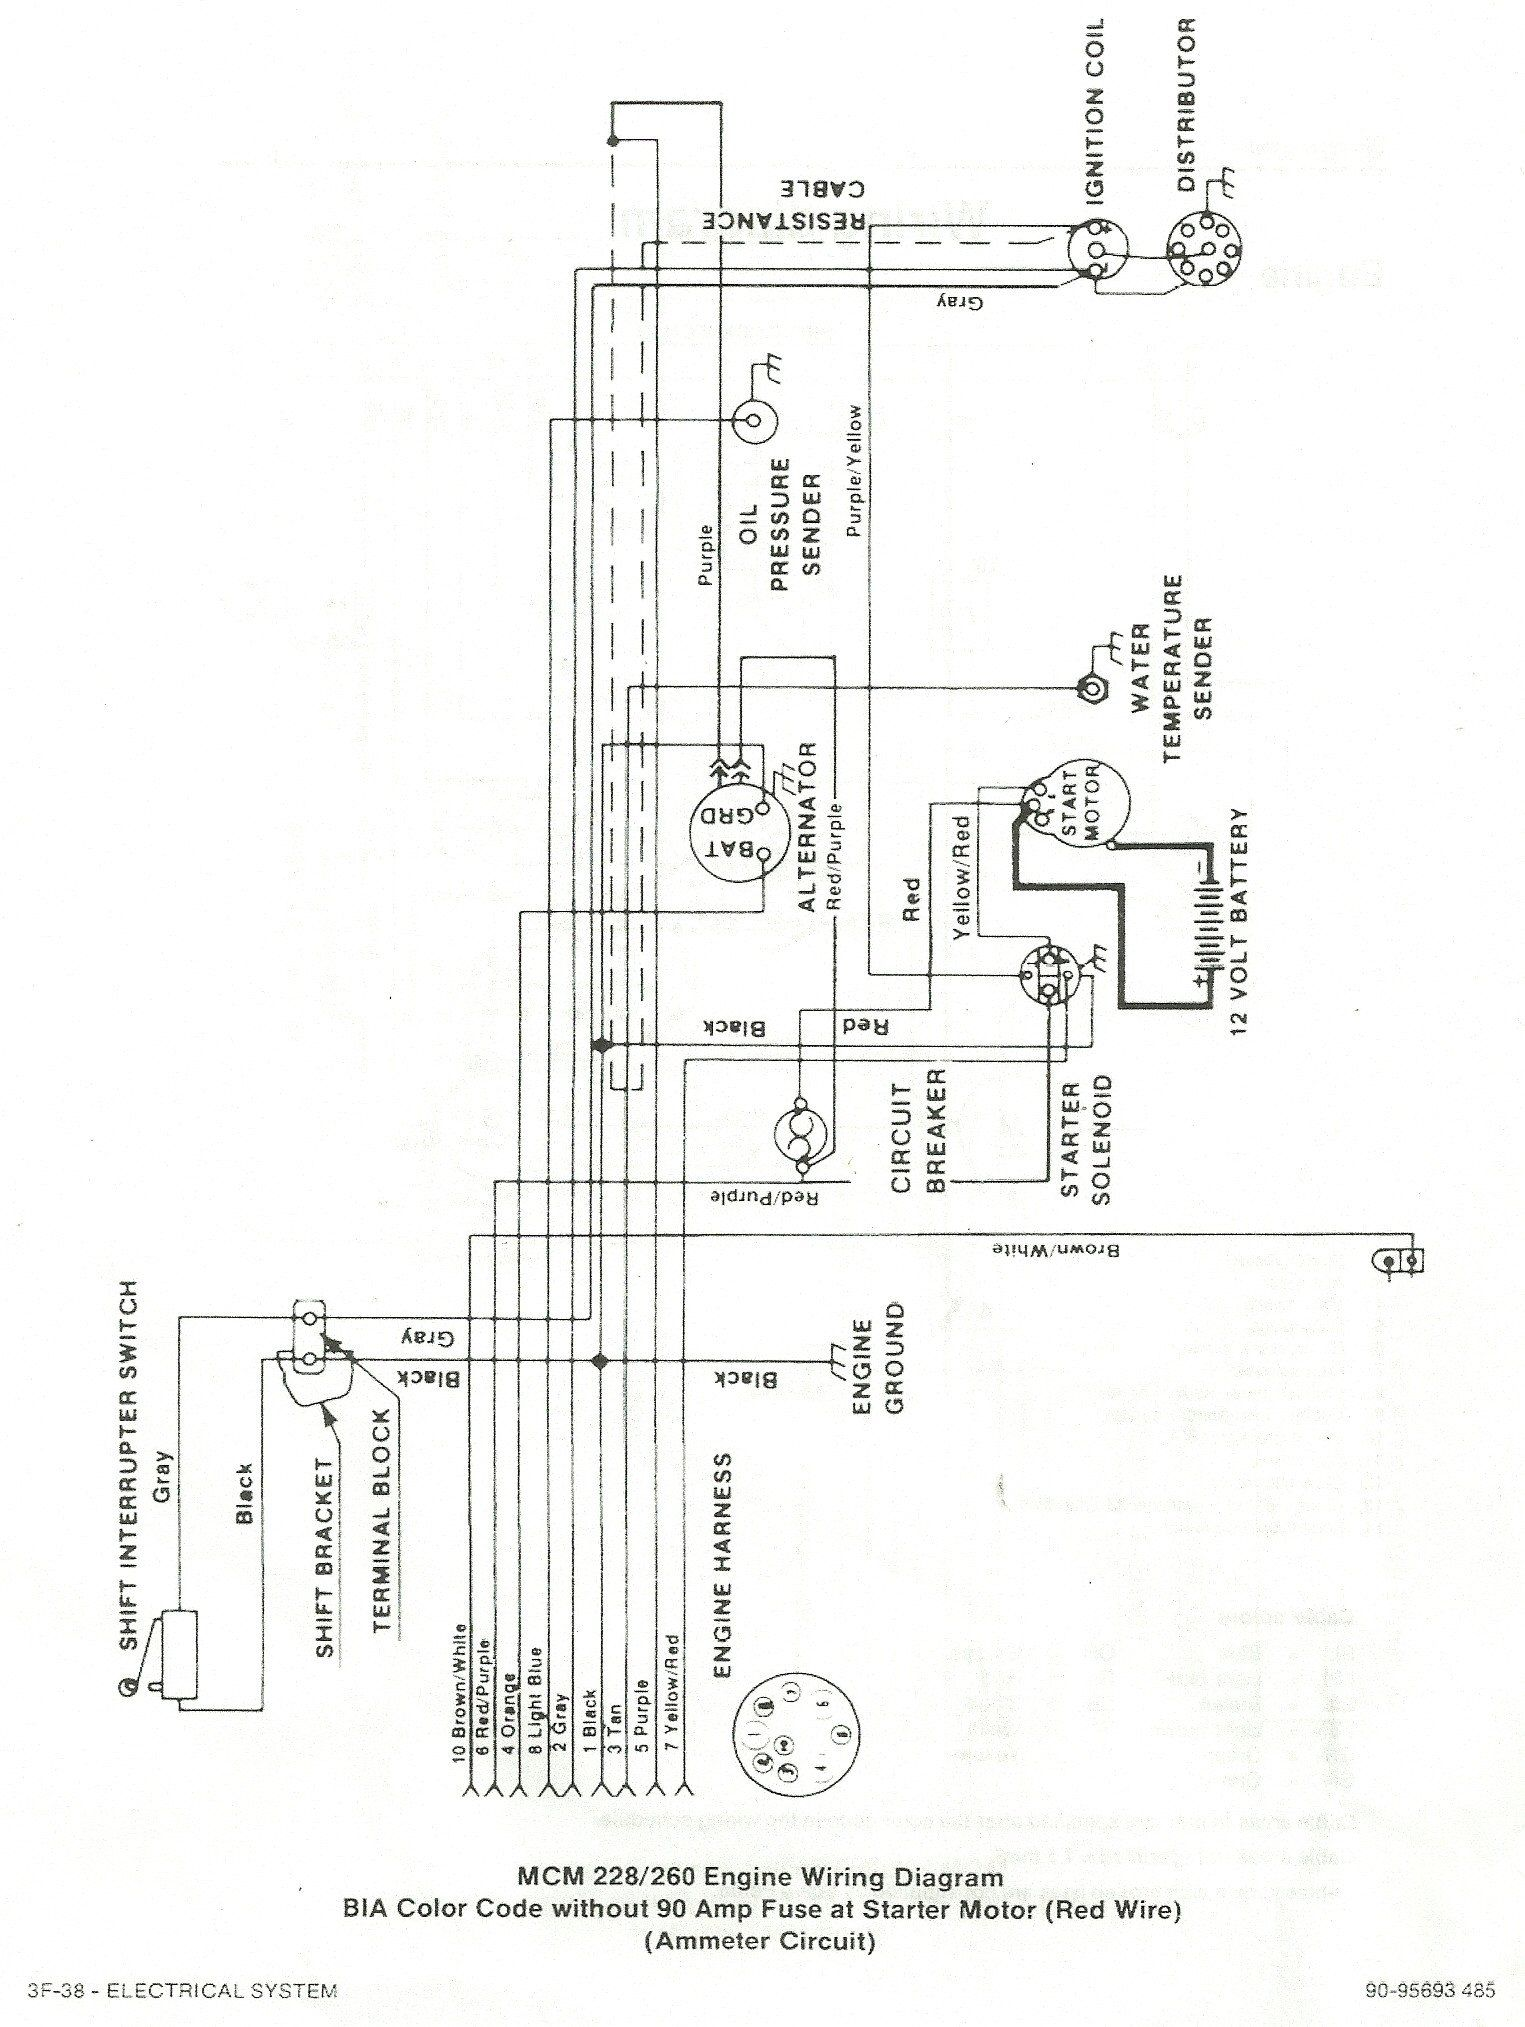 medium resolution of 1989 mercruiser 7 4 engine diagram wiring diagram toolbox 1984s 10 wiring diagram